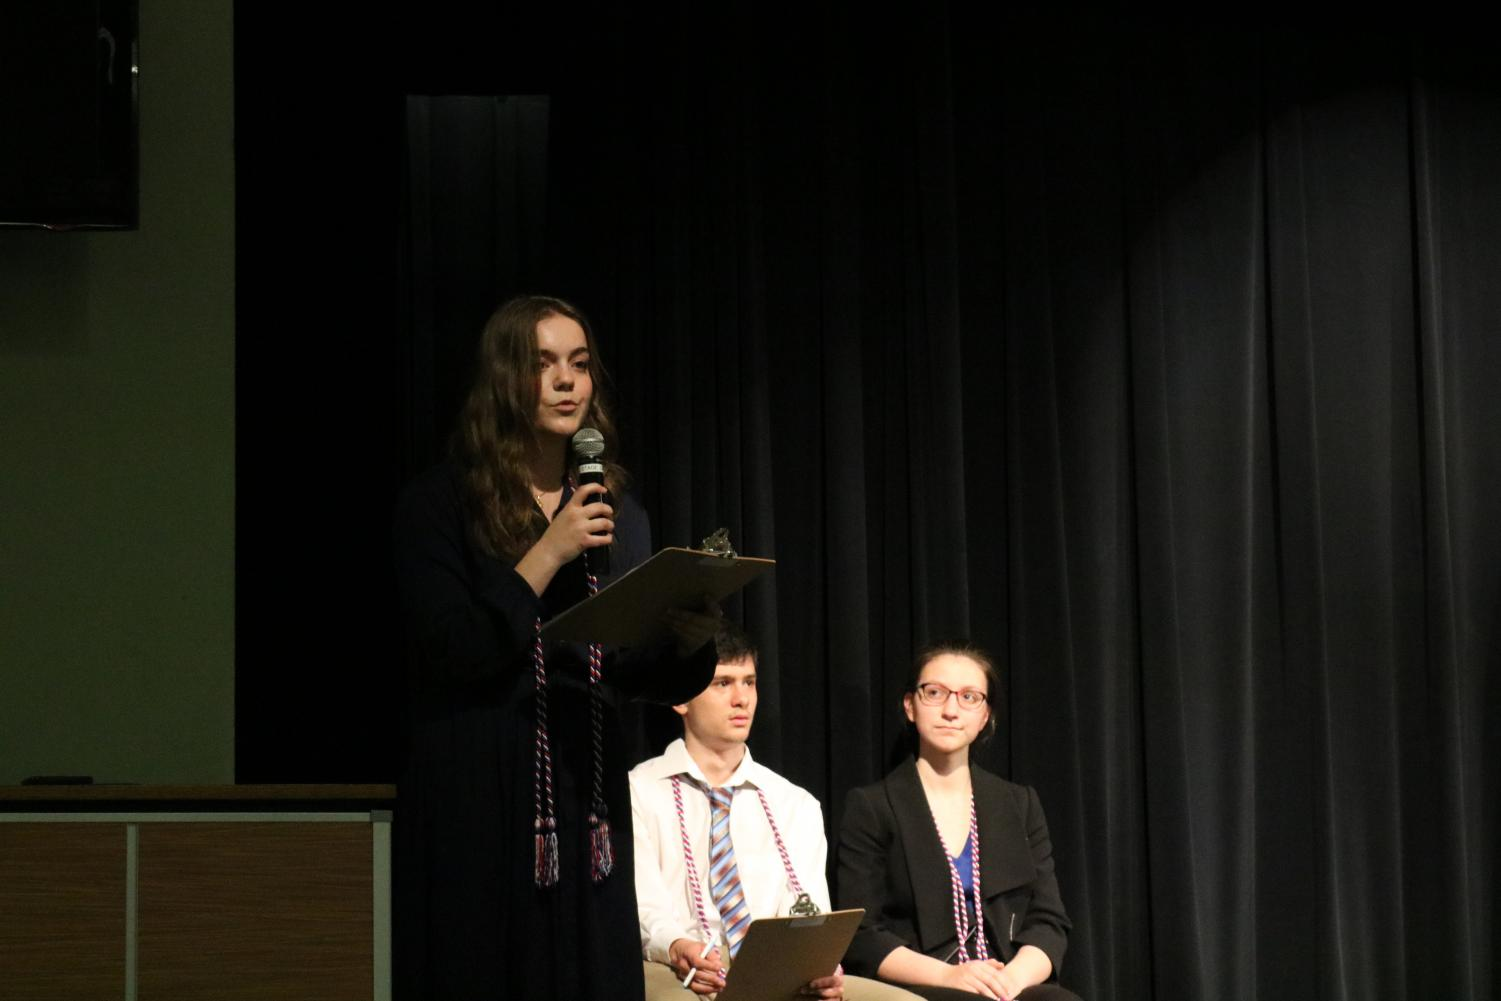 National+French+Honor+Society+Inducts+New+Members